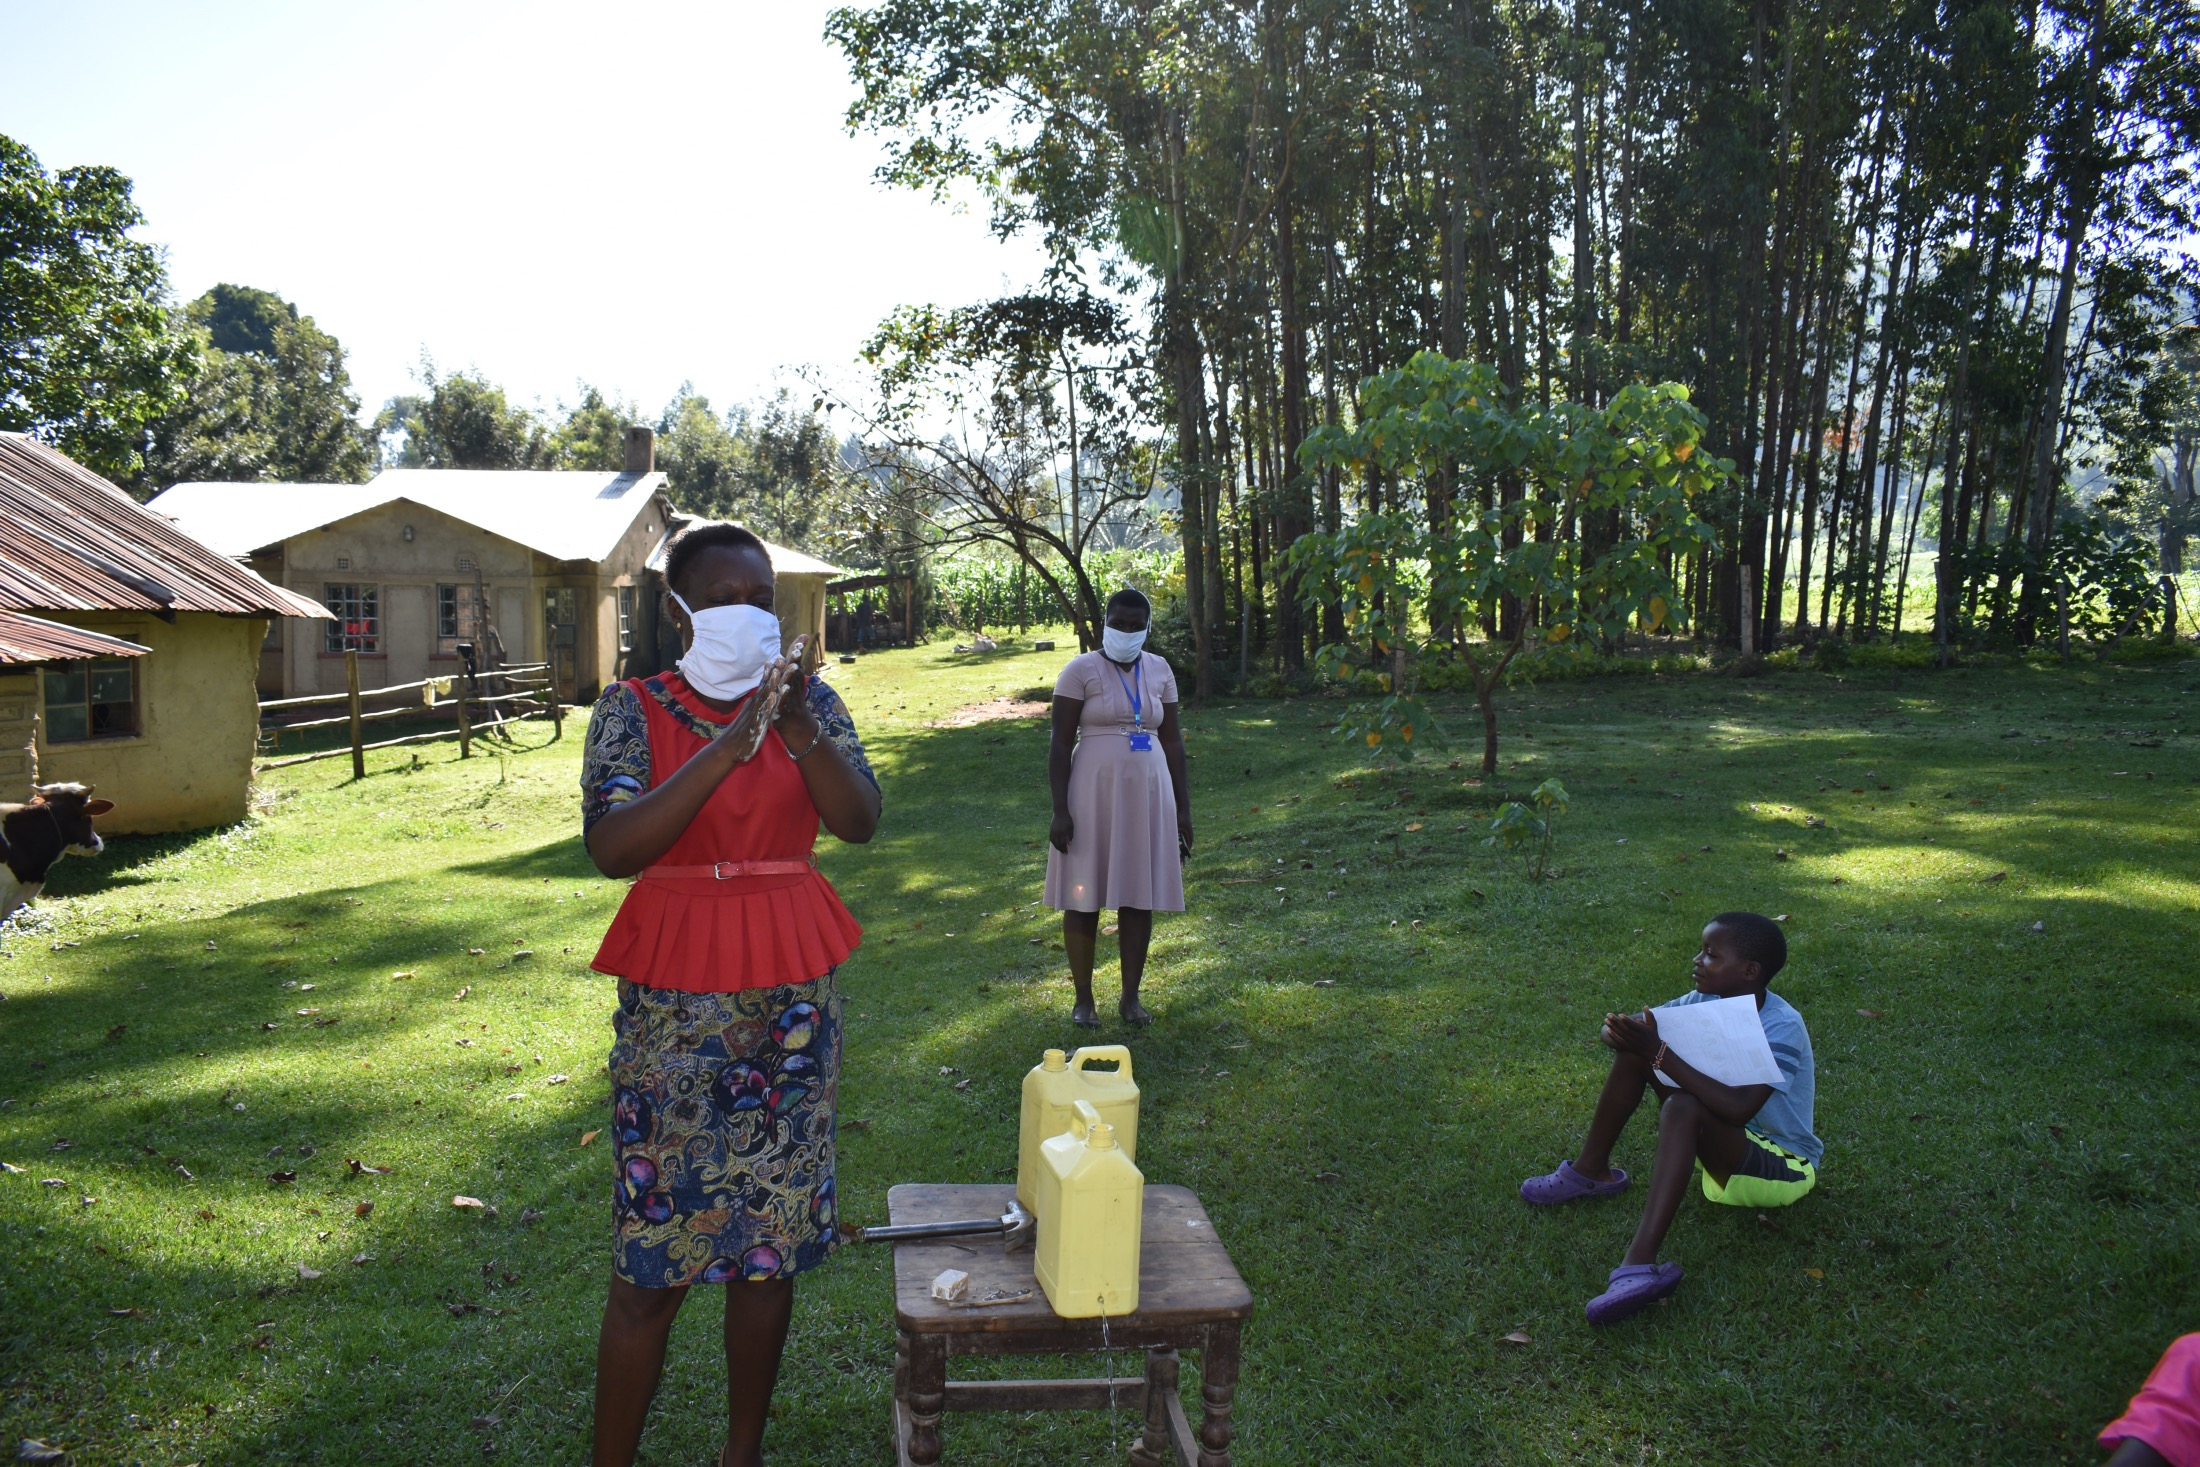 The Water Project : covid19-kenya19136-handwashing-with-soap-and-water-is-essential-to-keep-virus-away